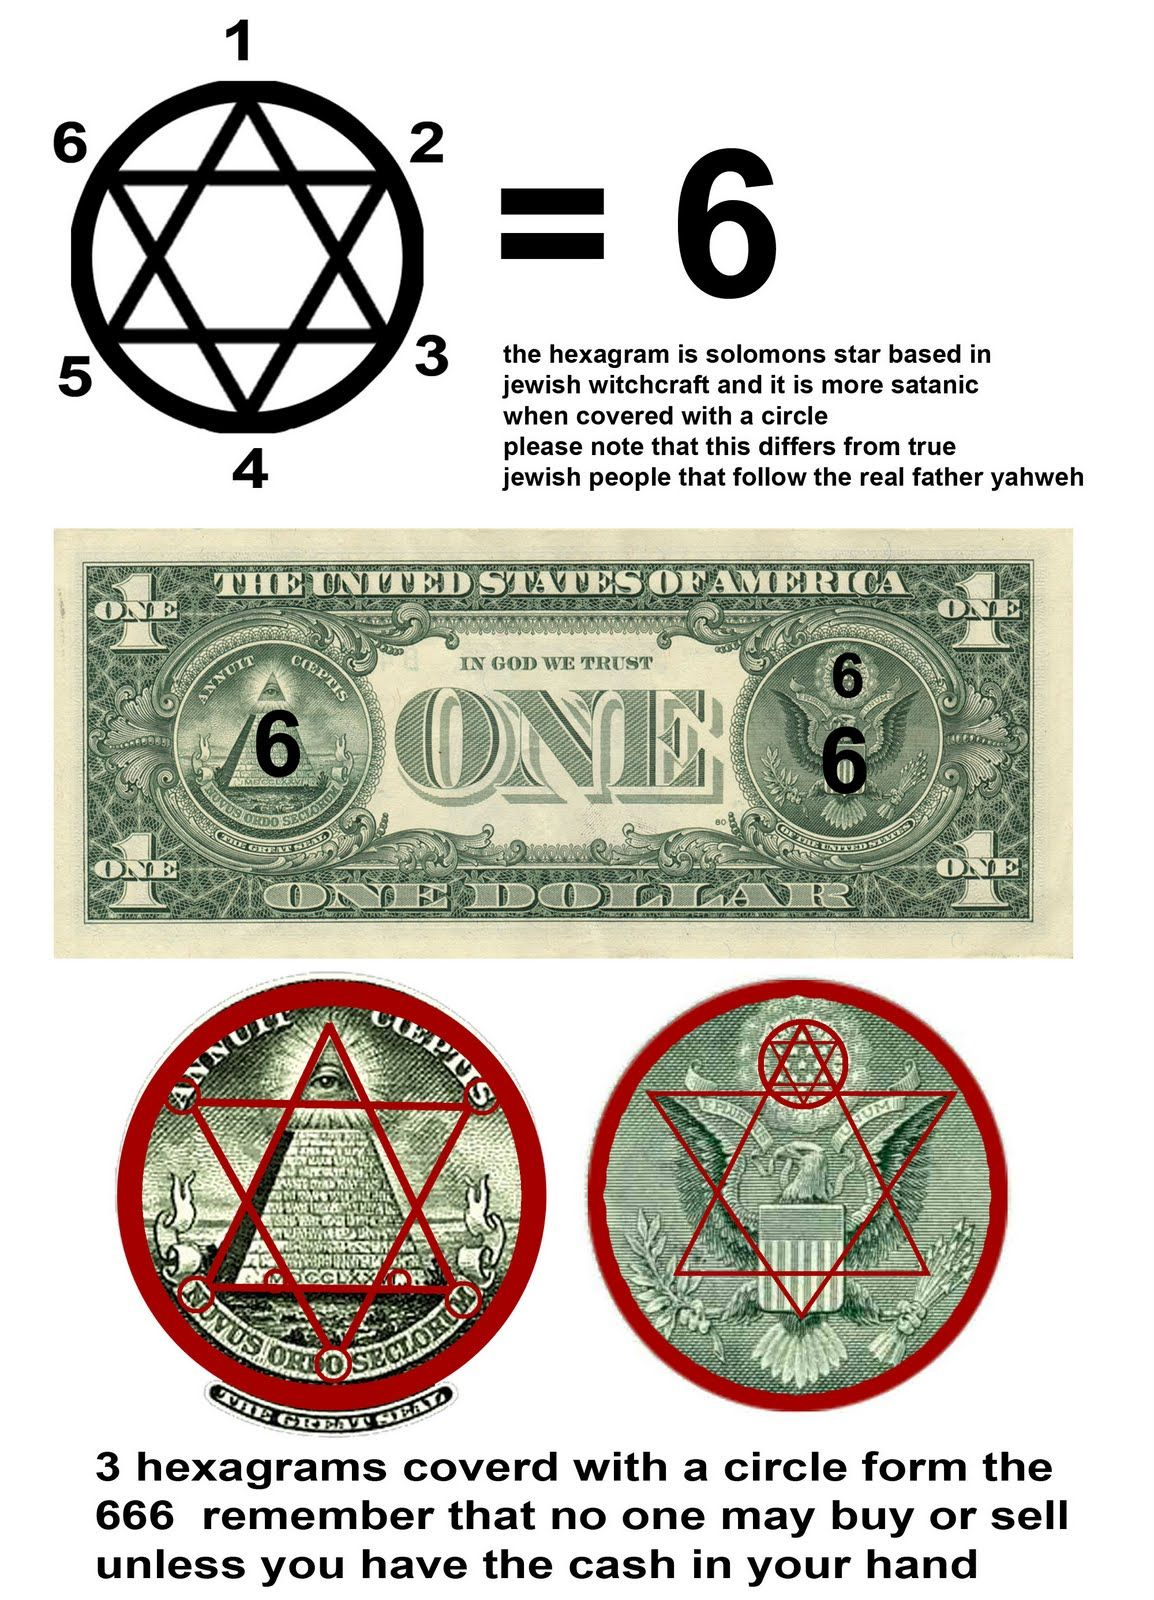 Hidden meaning symbolism of the dollar 666 mark of beast secret the capstone of the pyramid is symbolic of a 3 trinity of the antichrist false prophet and the beast s the symbolism of the seal of the pyramid represents buycottarizona